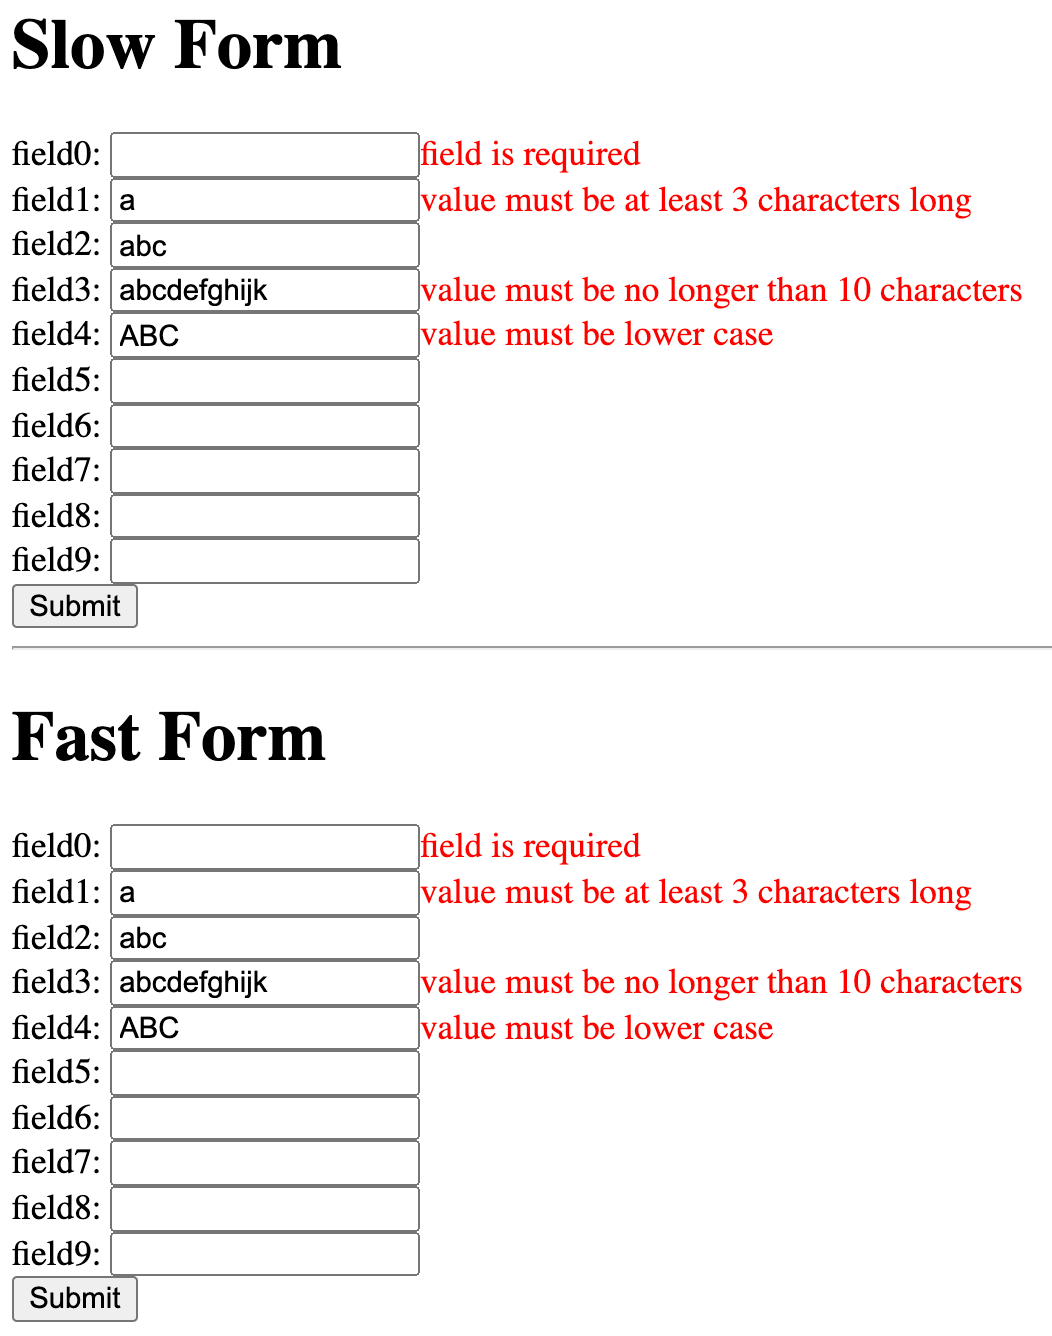 Overview of the app showing two sections with ten fields and a submit button